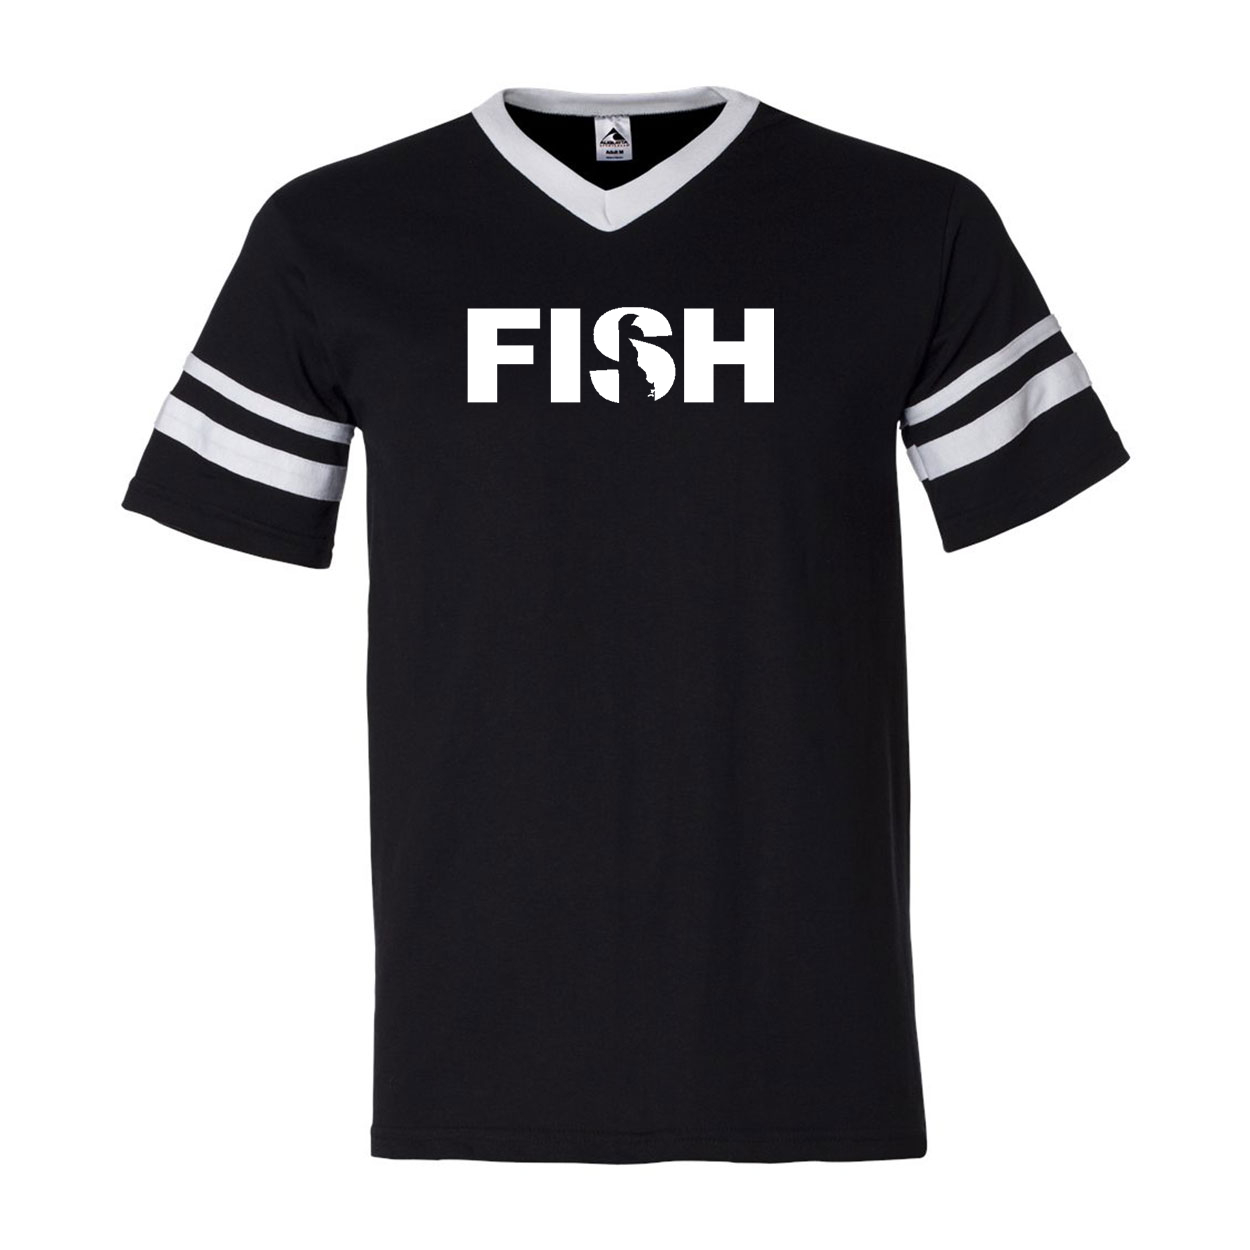 Fish Delaware Classic Premium Striped Jersey T-Shirt Black/White (White Logo)